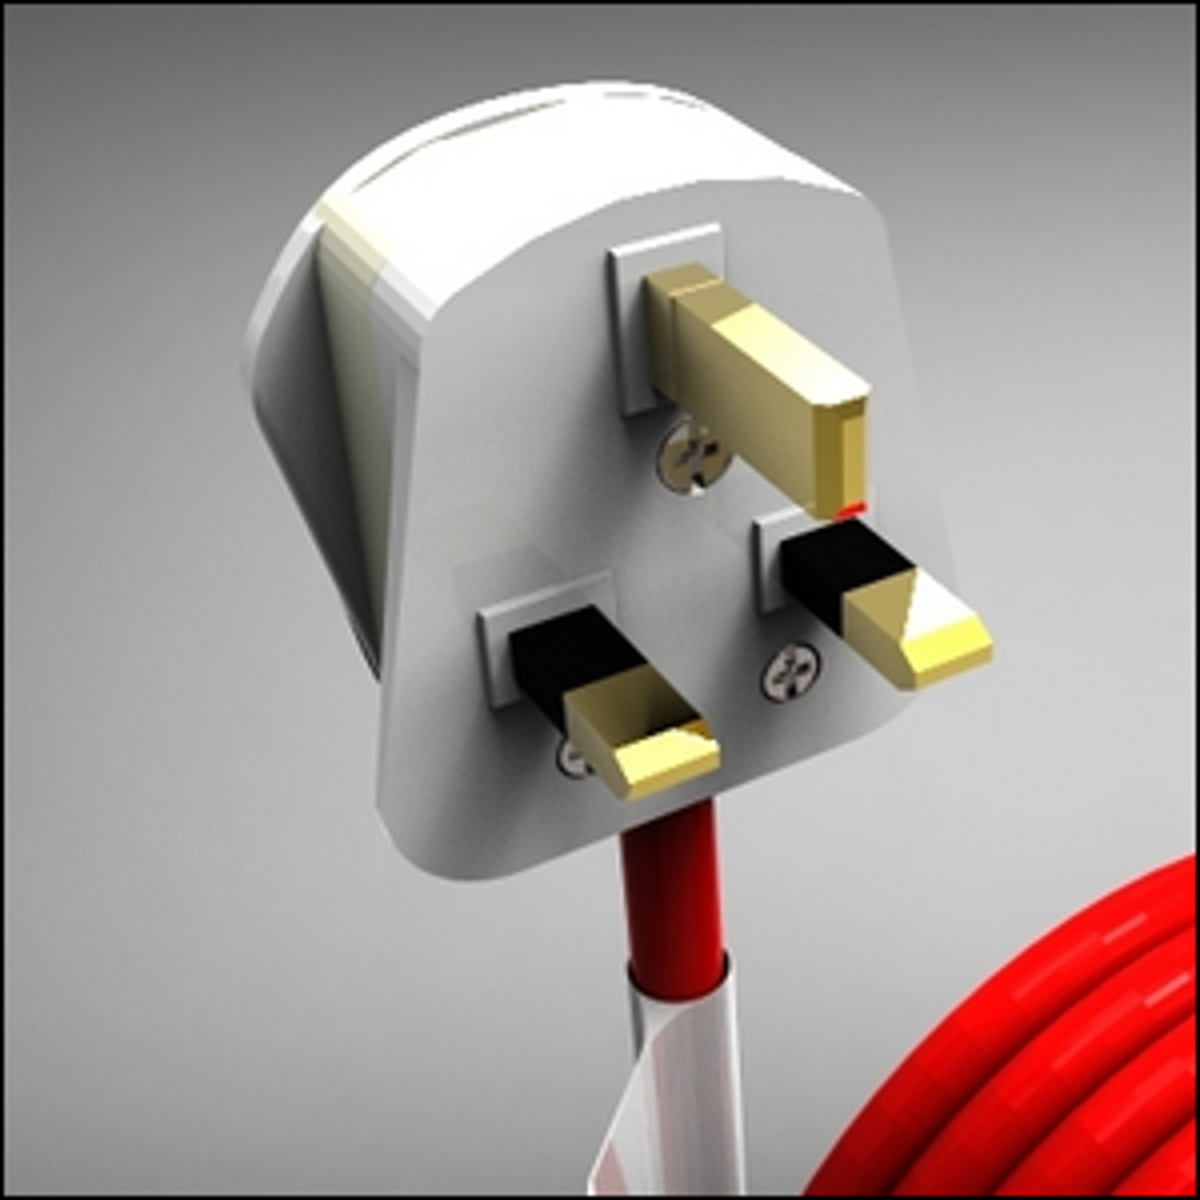 A detailed drawing of a domestic 3-pin U.K. mains type electrical plug complete with a fuse and 3-core cable.